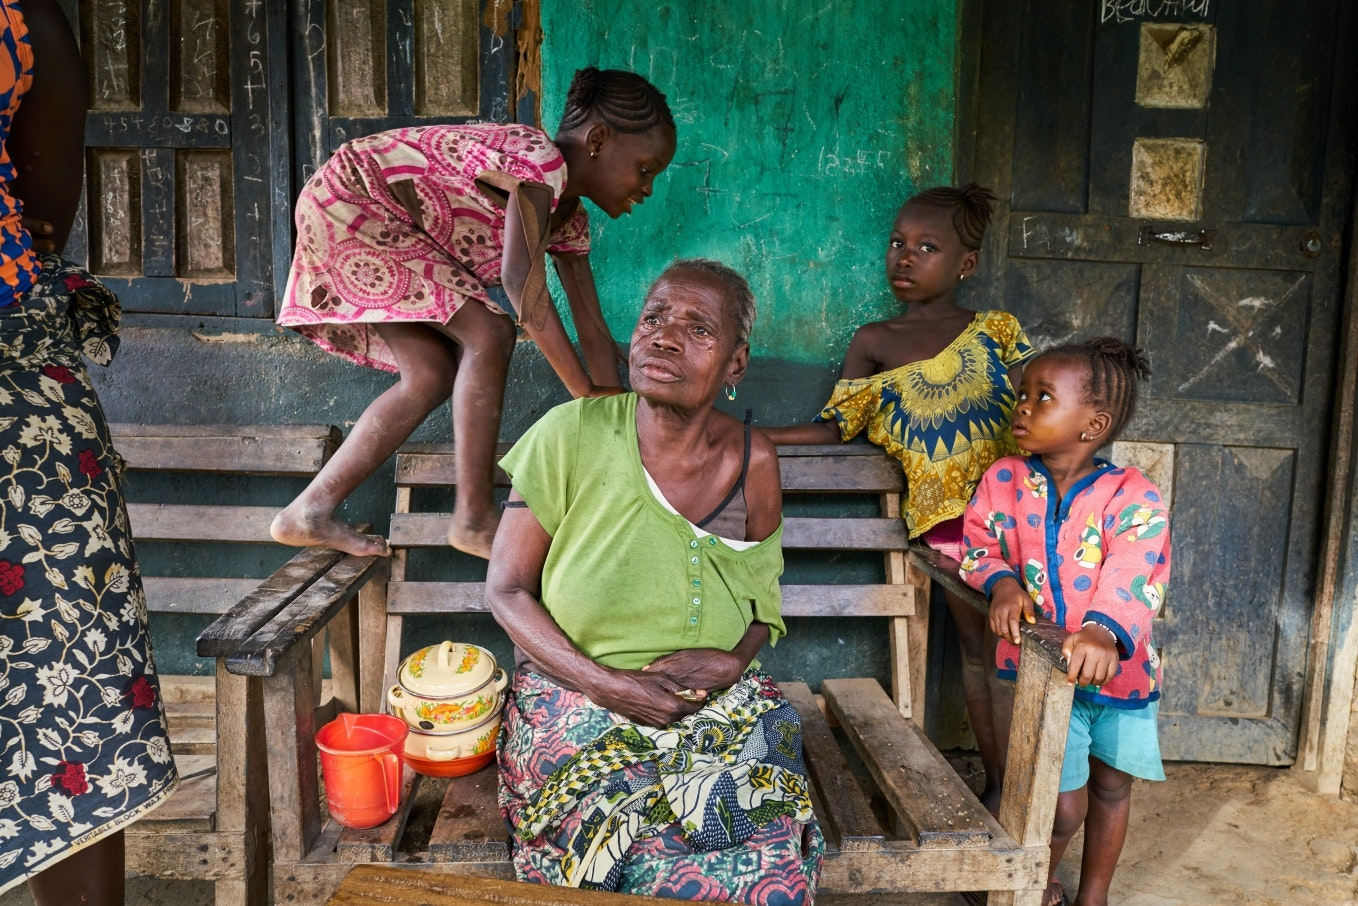 An elderly woman surrounded by children